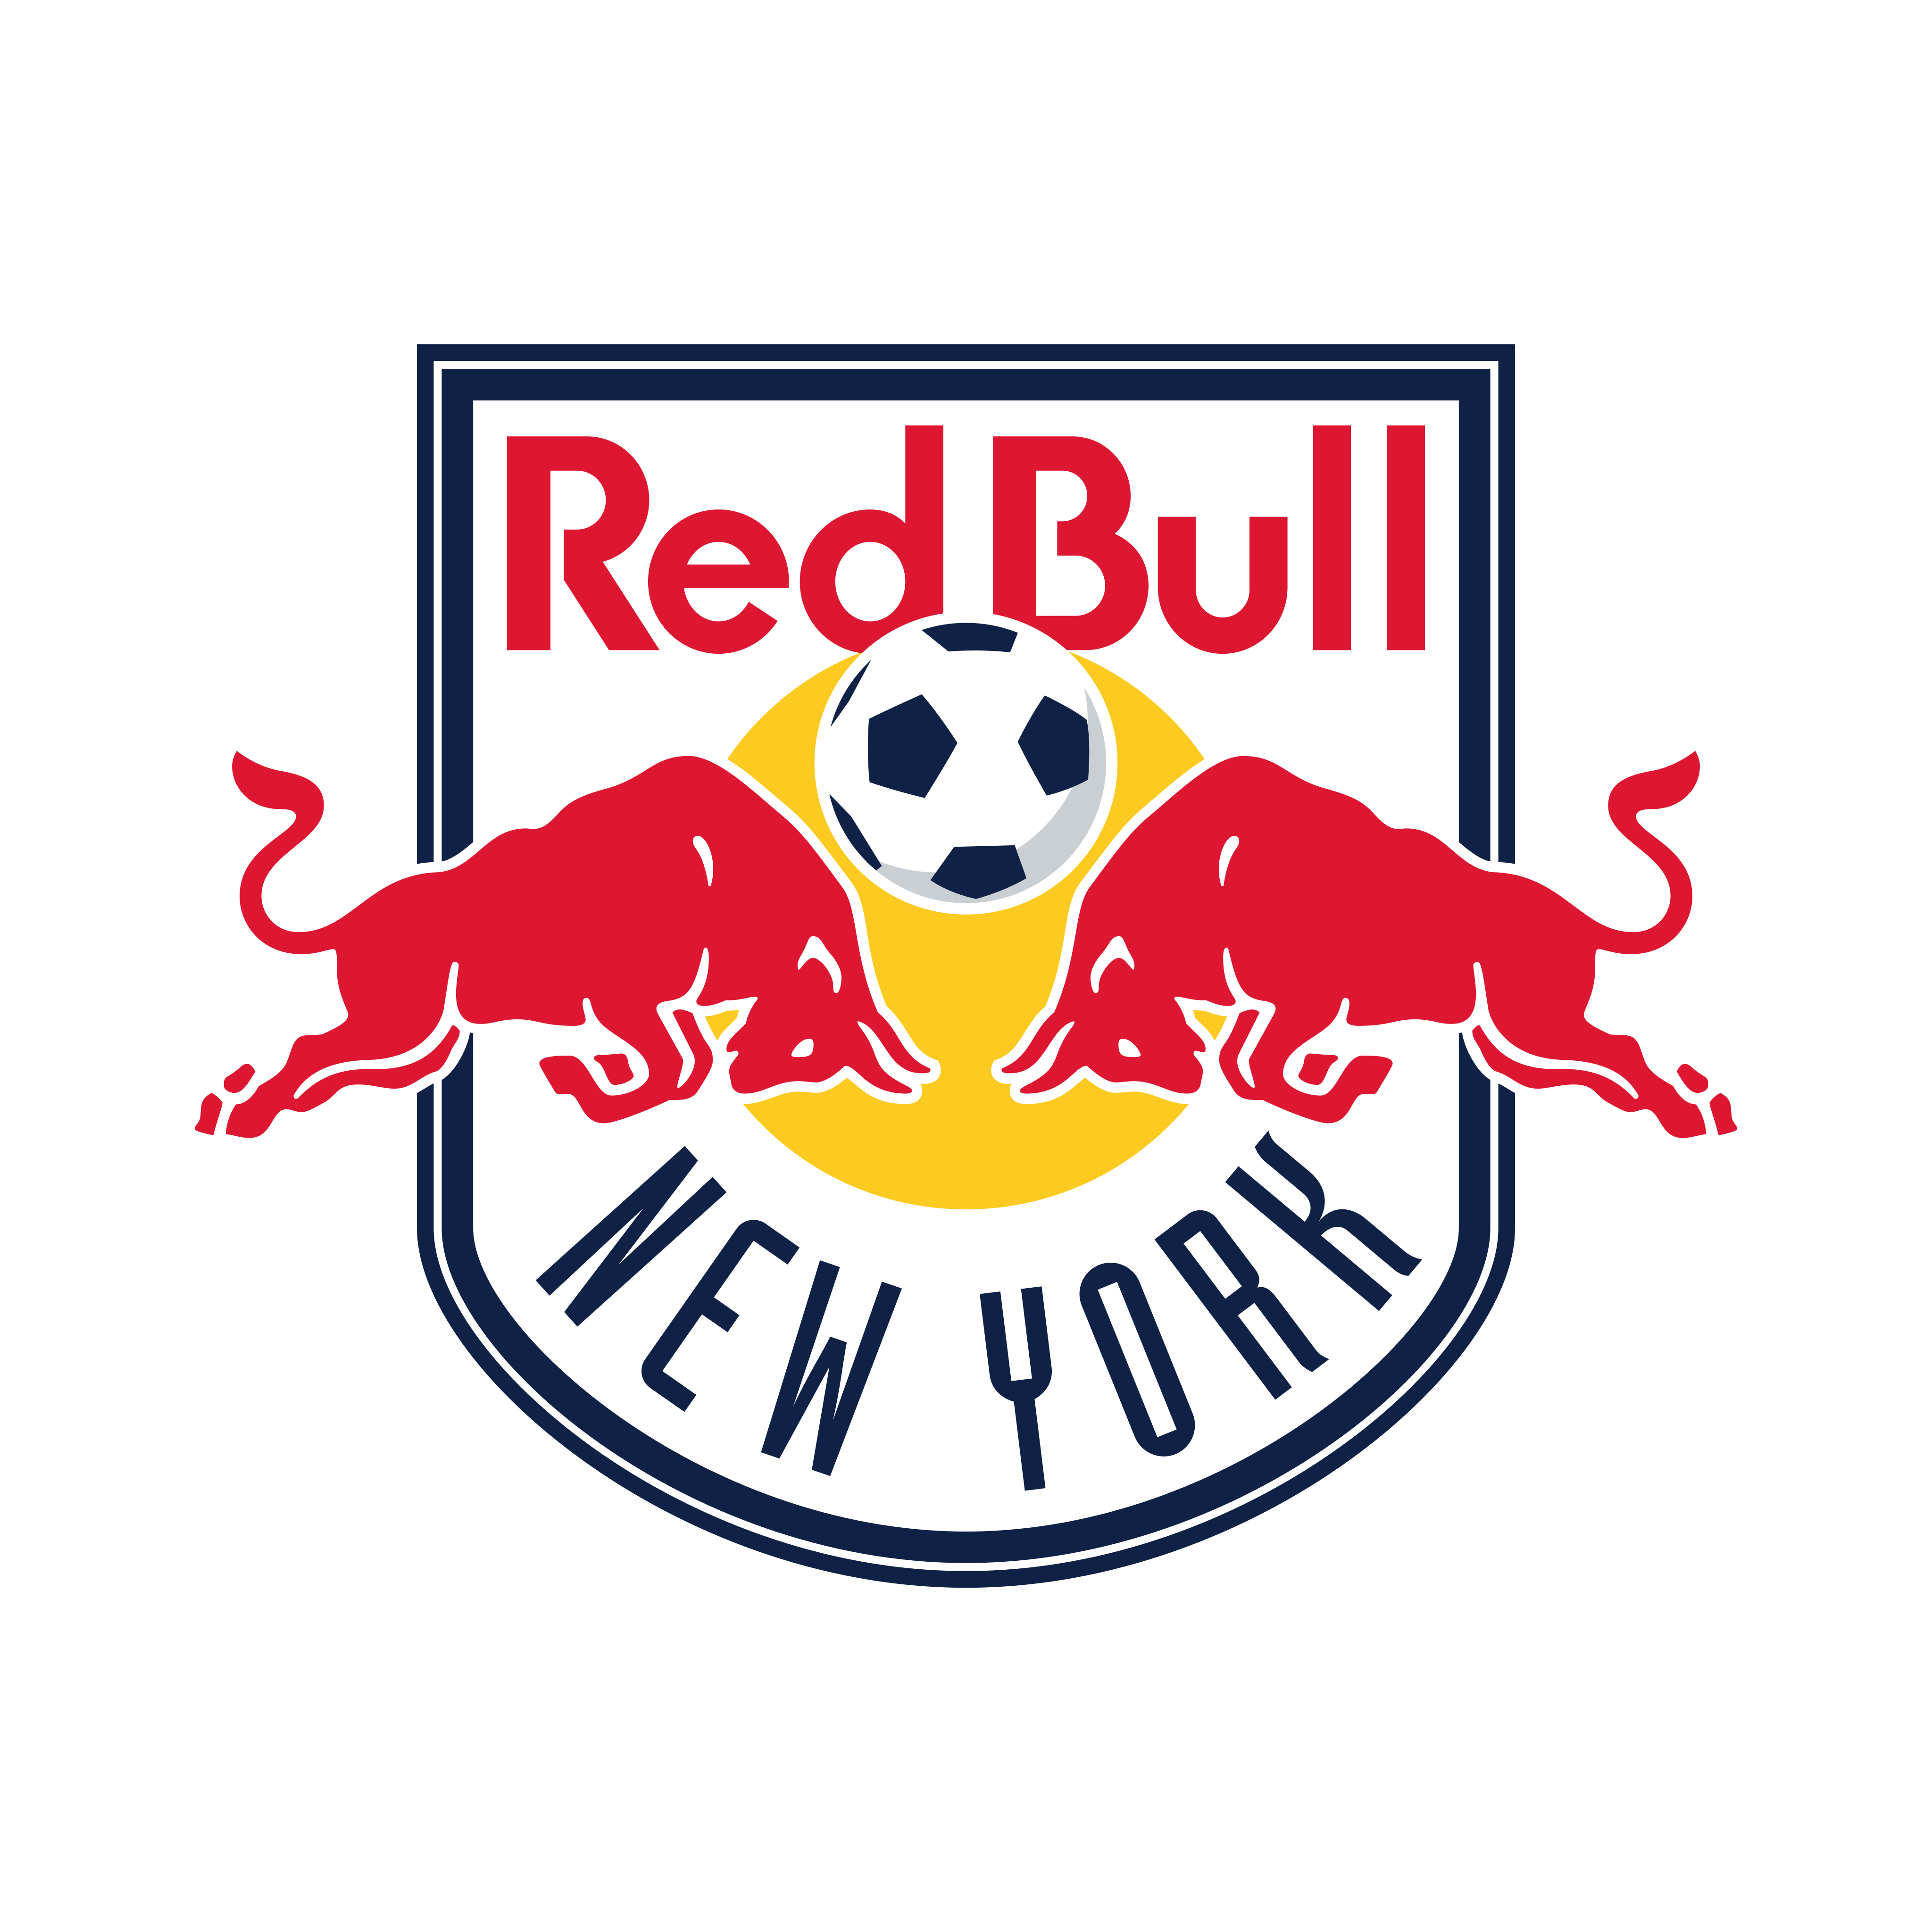 new york red bulls logo 0 - New York Red Bulls Logo